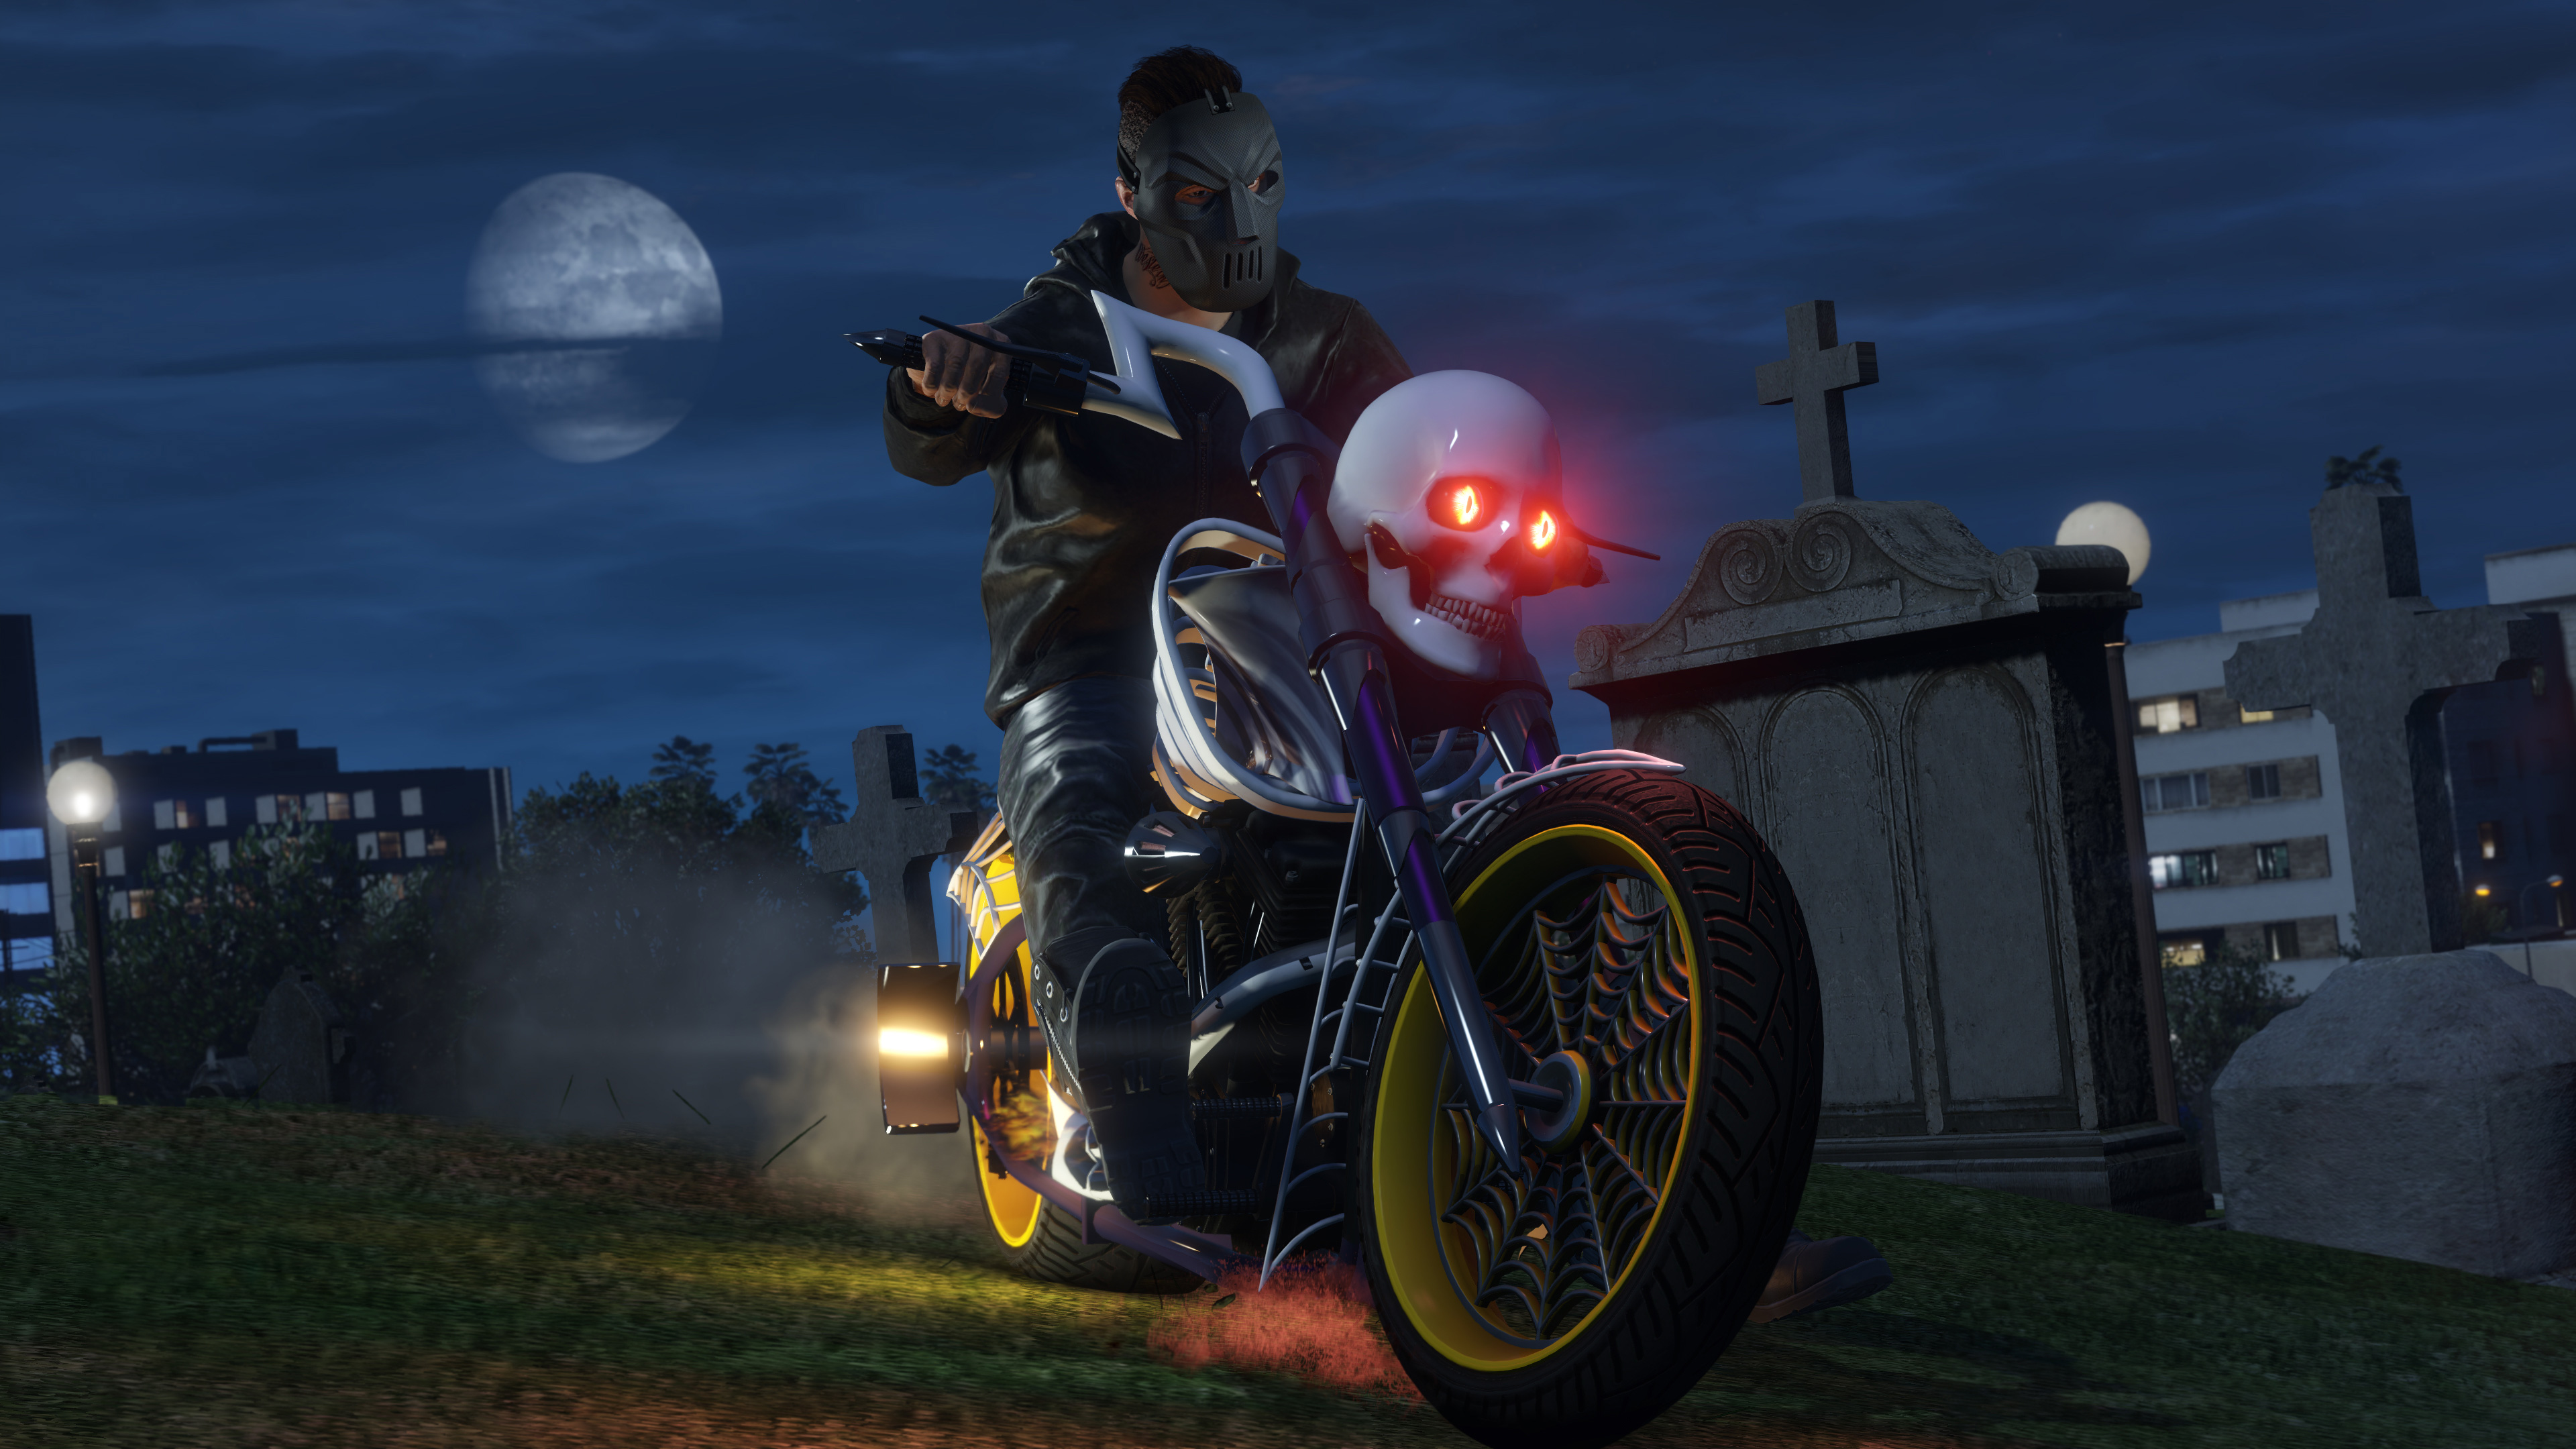 GTA Online's third anniversary comes with $250K in-game bonus for everyone (update)